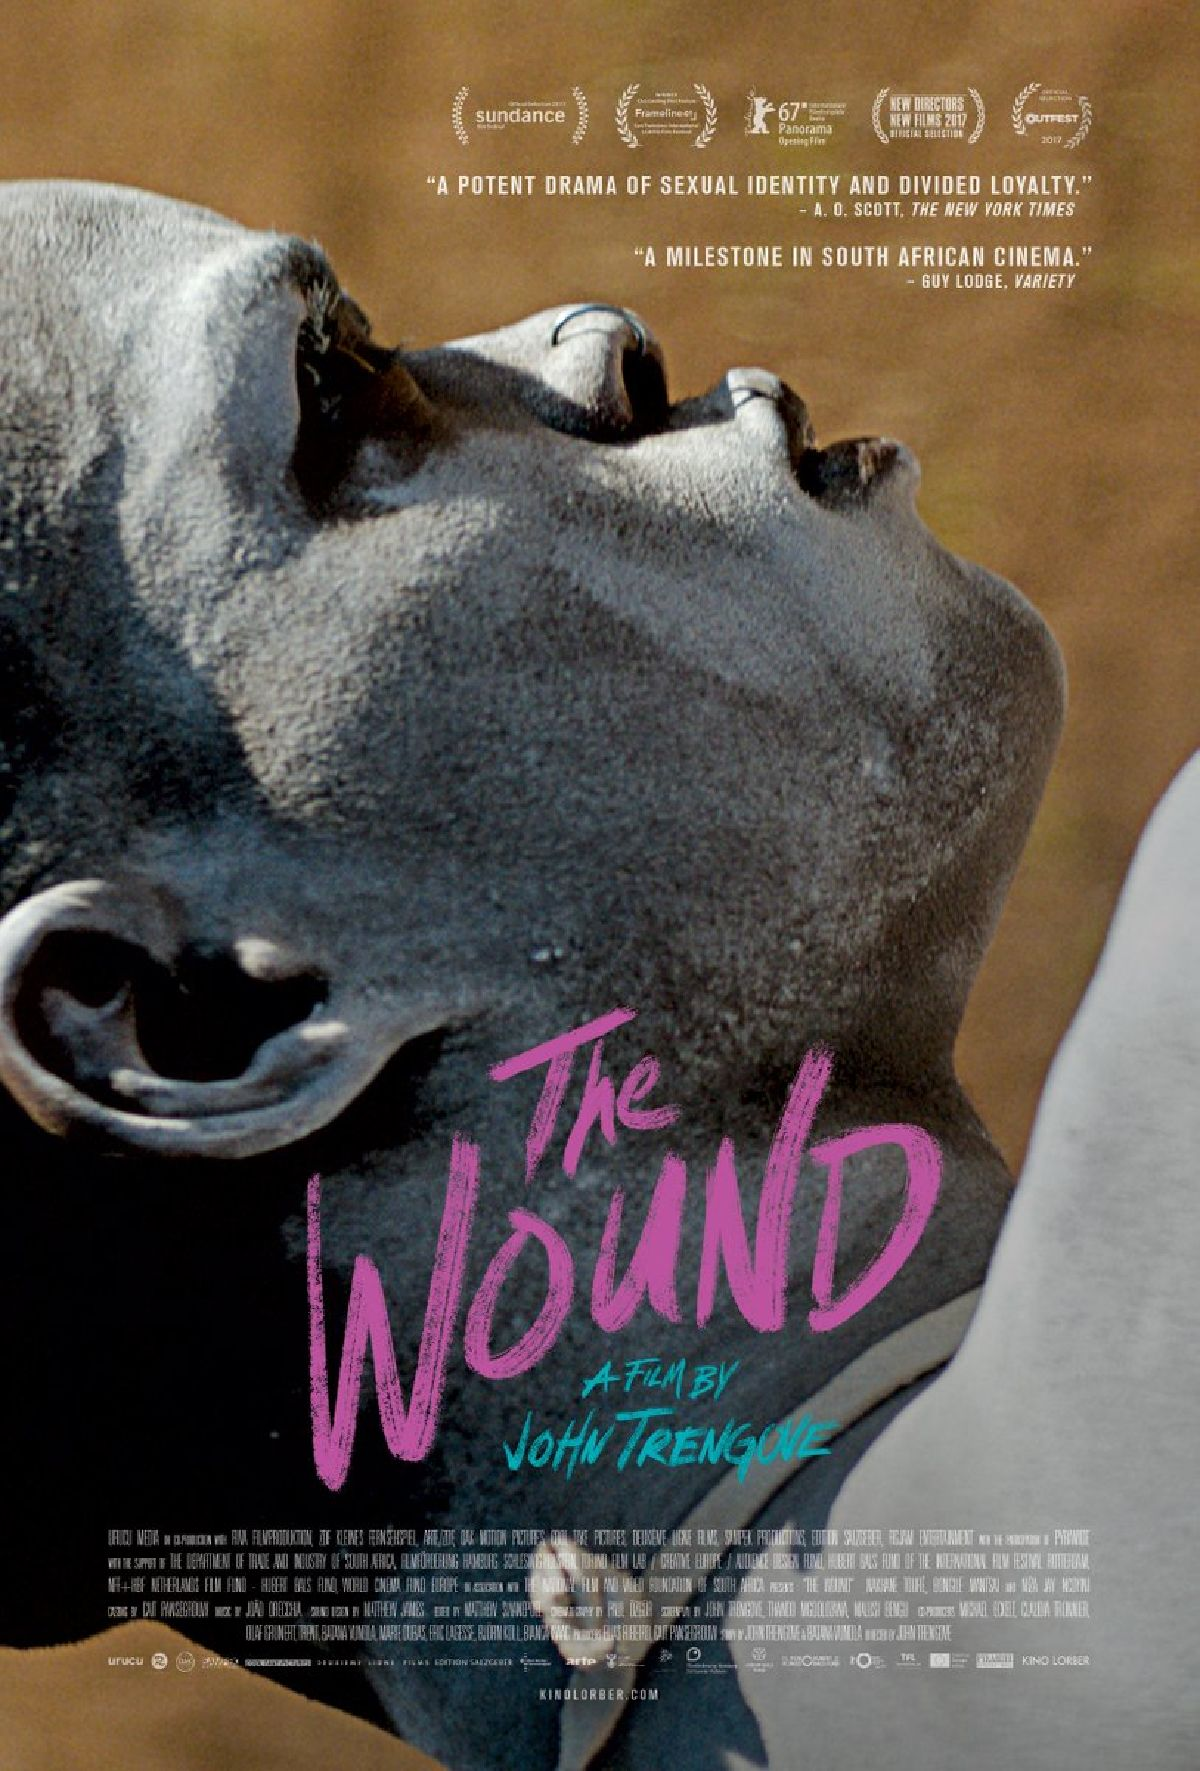 'The Wound' movie poster